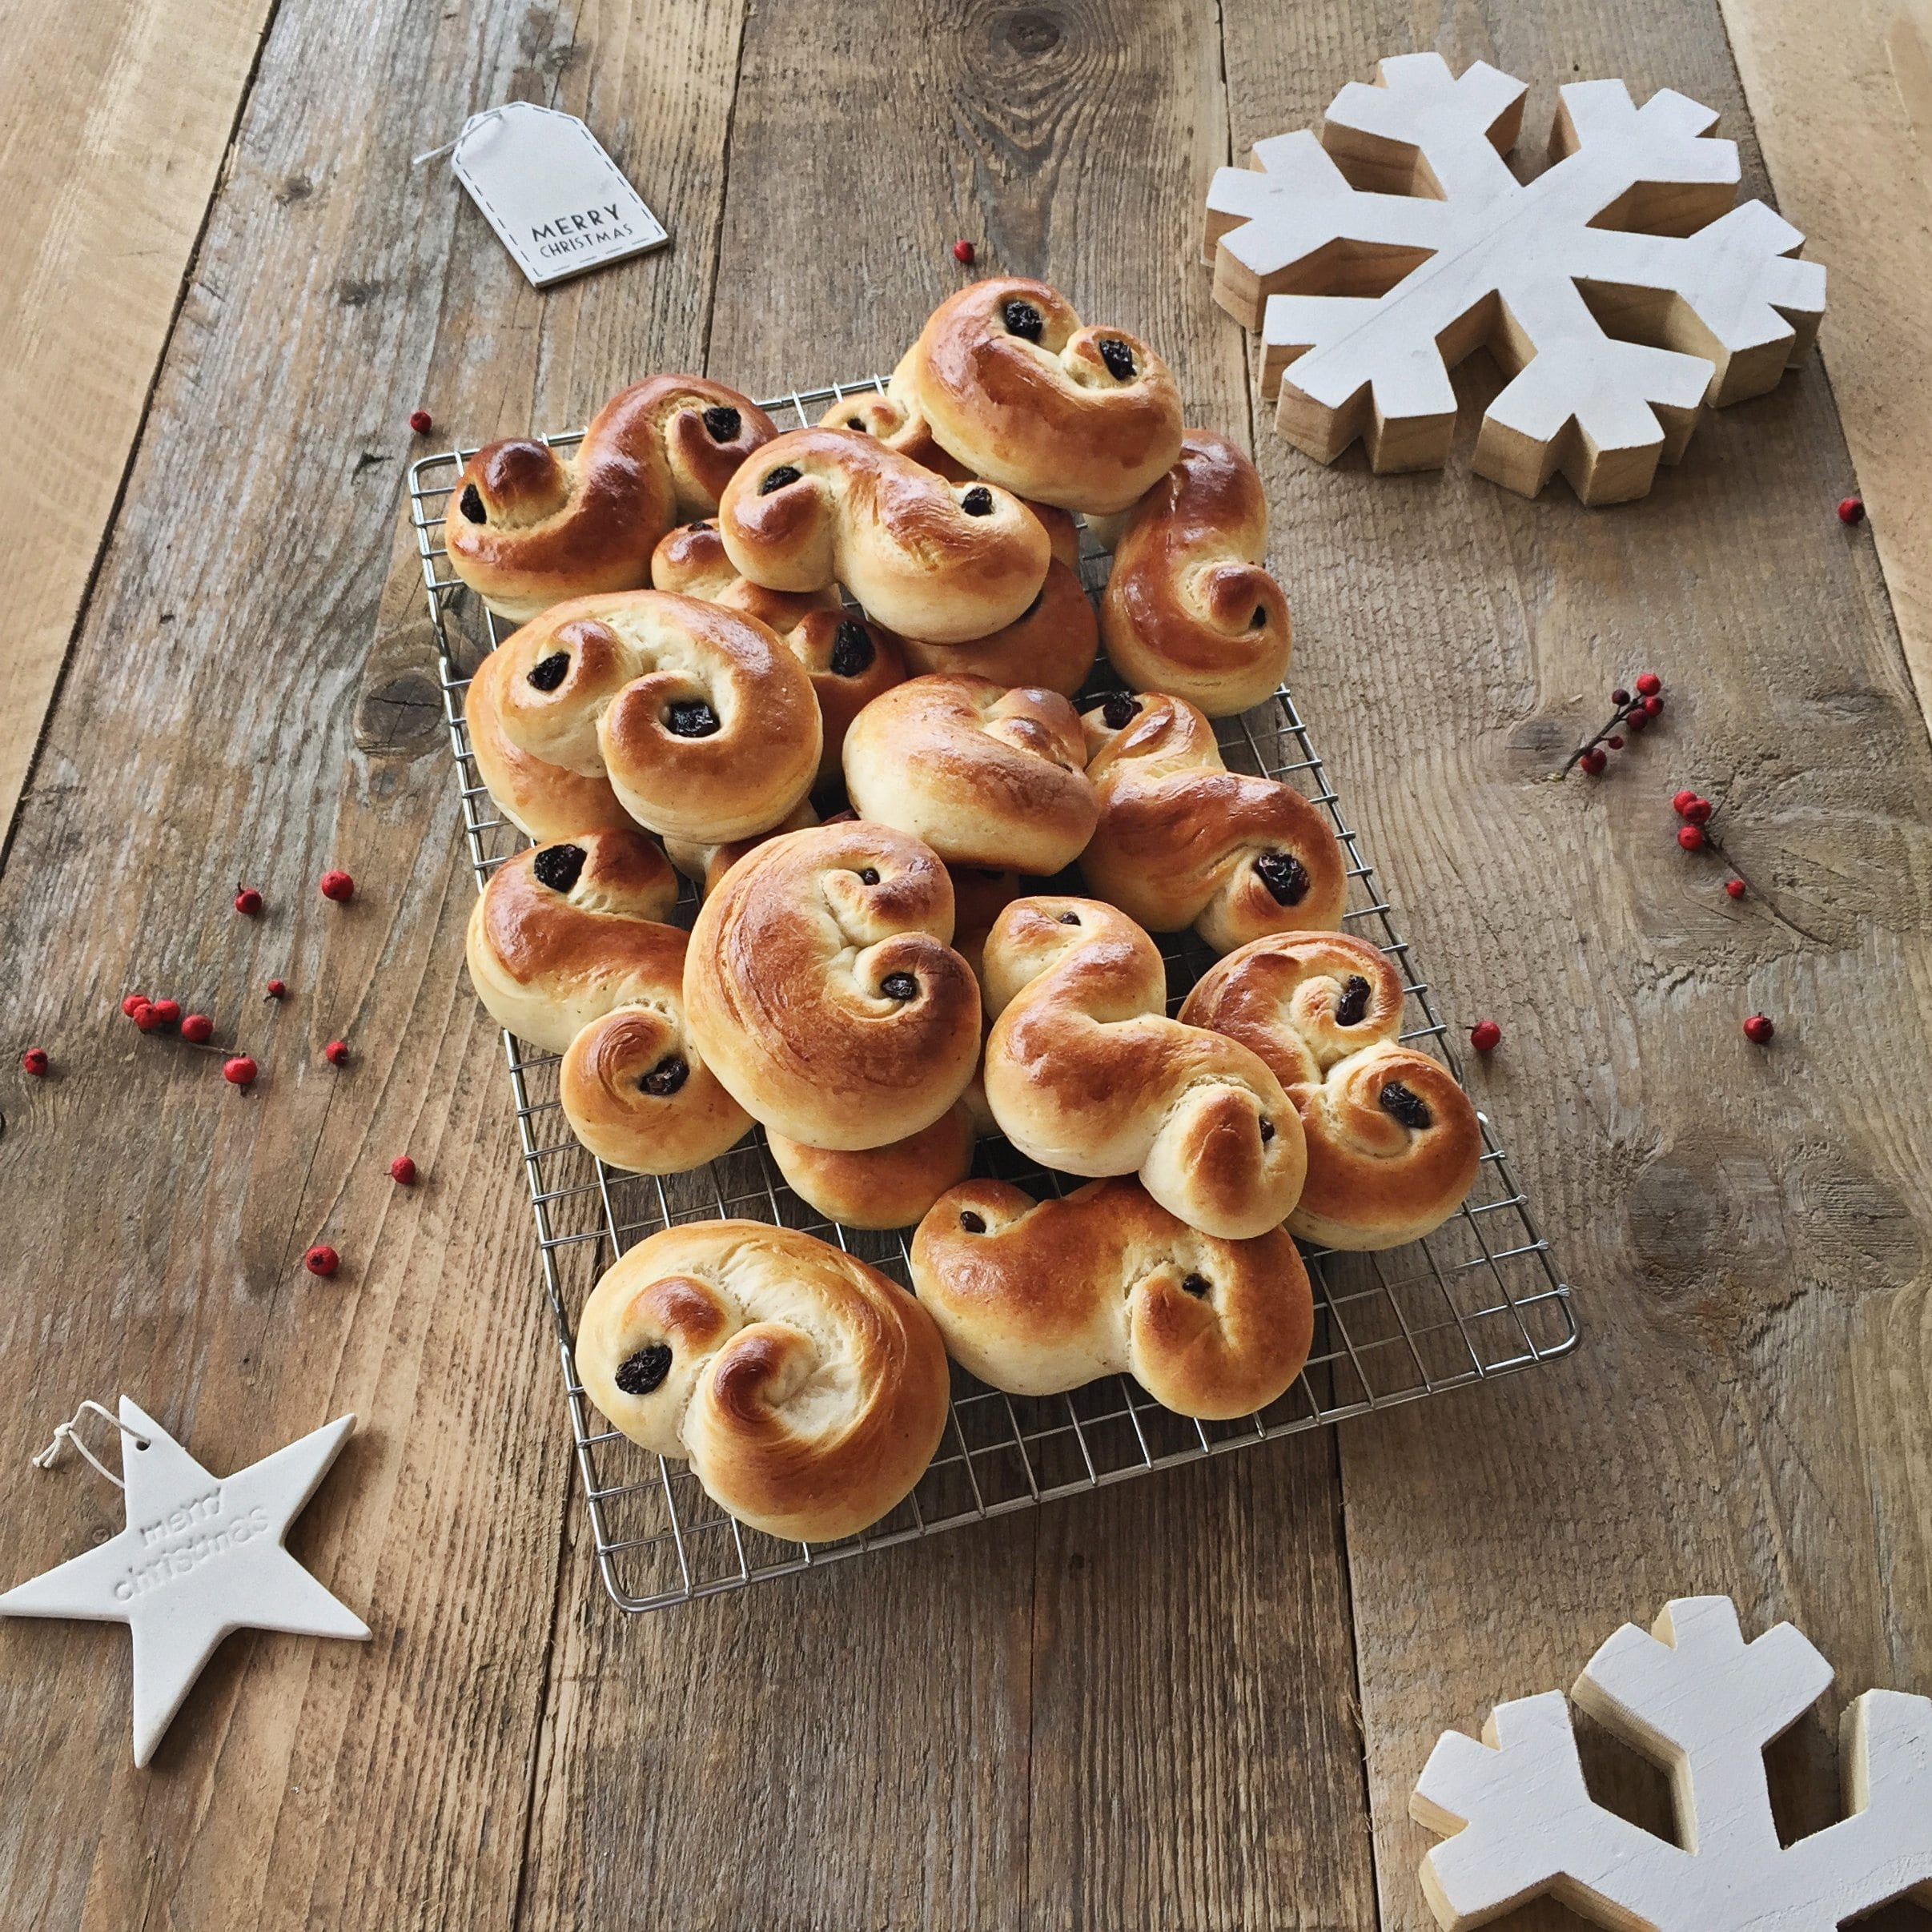 lussekatter, buns, food, baking, shapes, st.lucia, foodstyling, livestyle